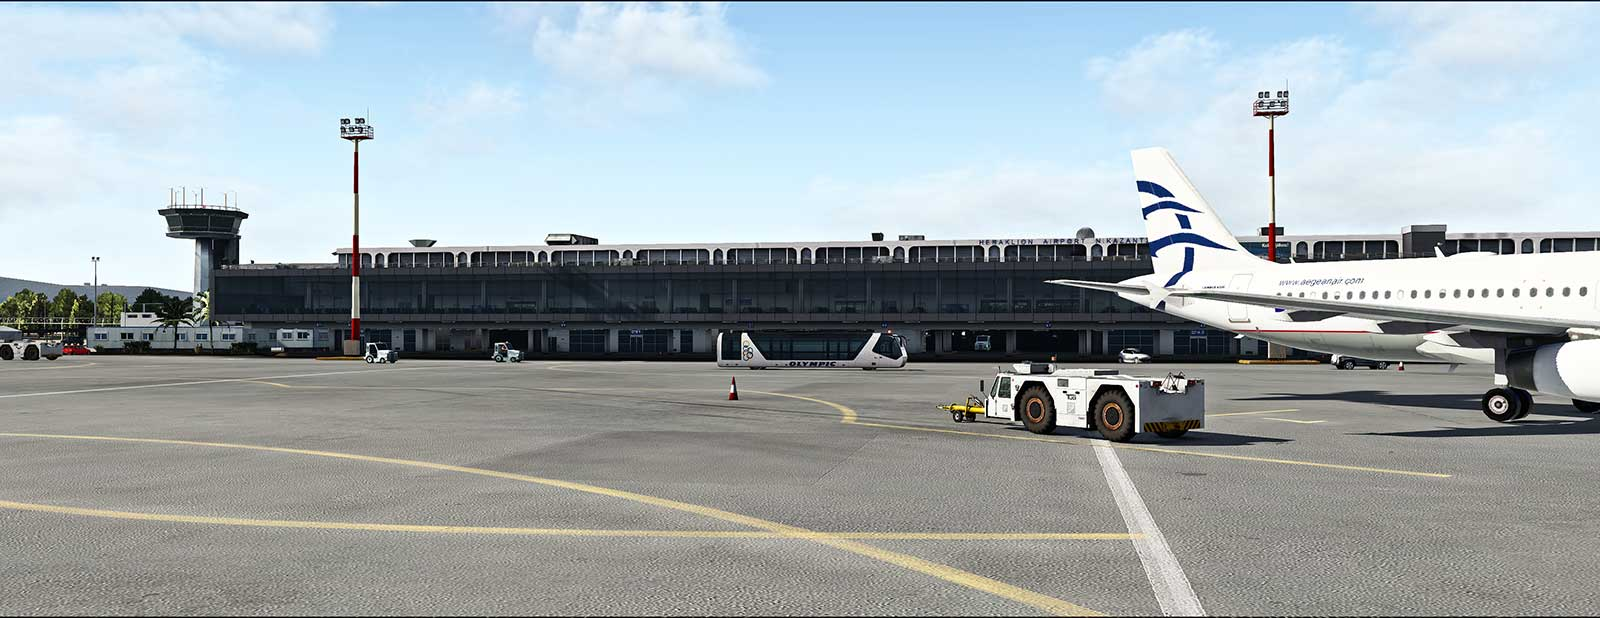 FlyTampa - Heraklion XP